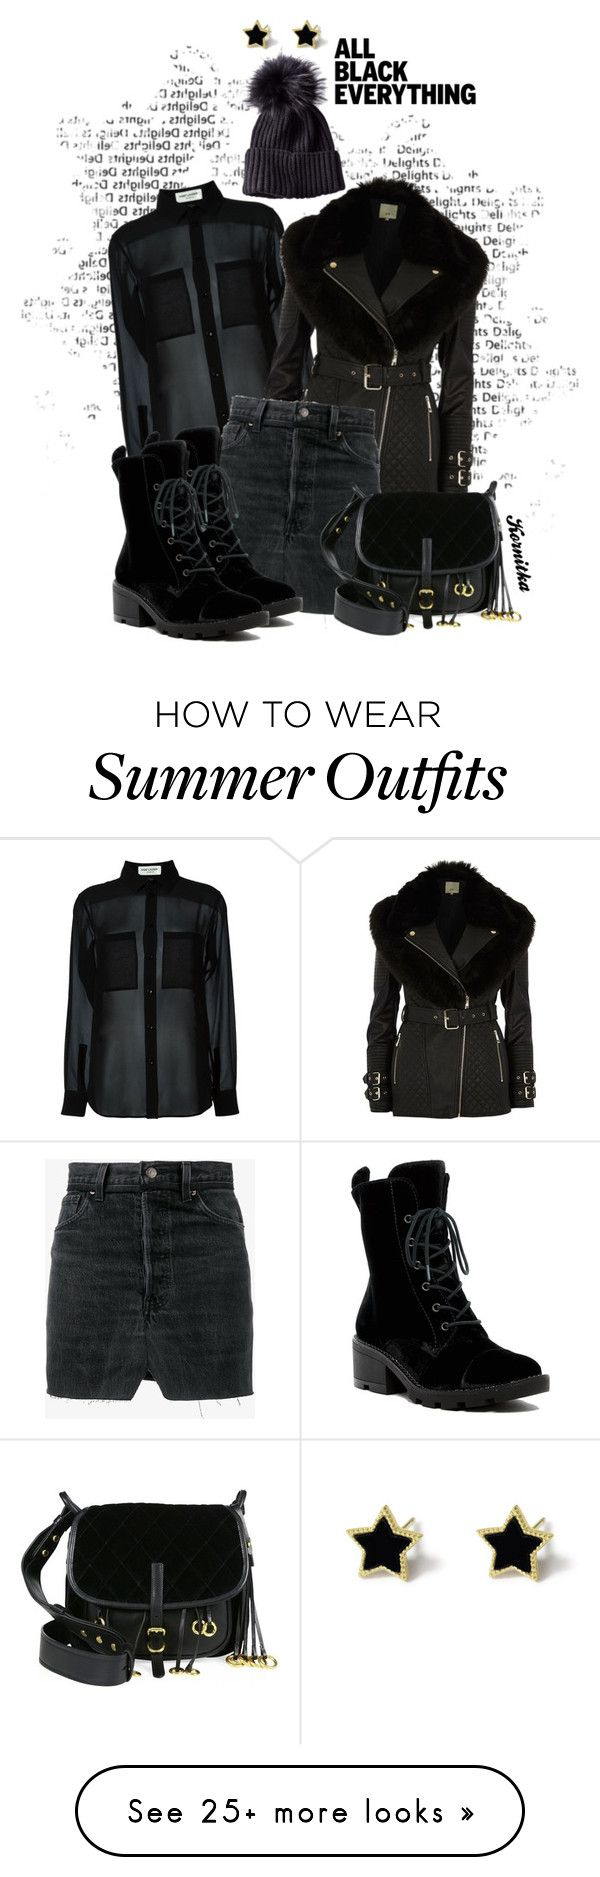 """""""nr 2123 / My Winter Idea"""" by kornitka on Polyvore featuring Yves Saint Laurent, River Island, Vetements, Kendall + Kylie, Prada, denim, combatboots and allblackoutfit"""